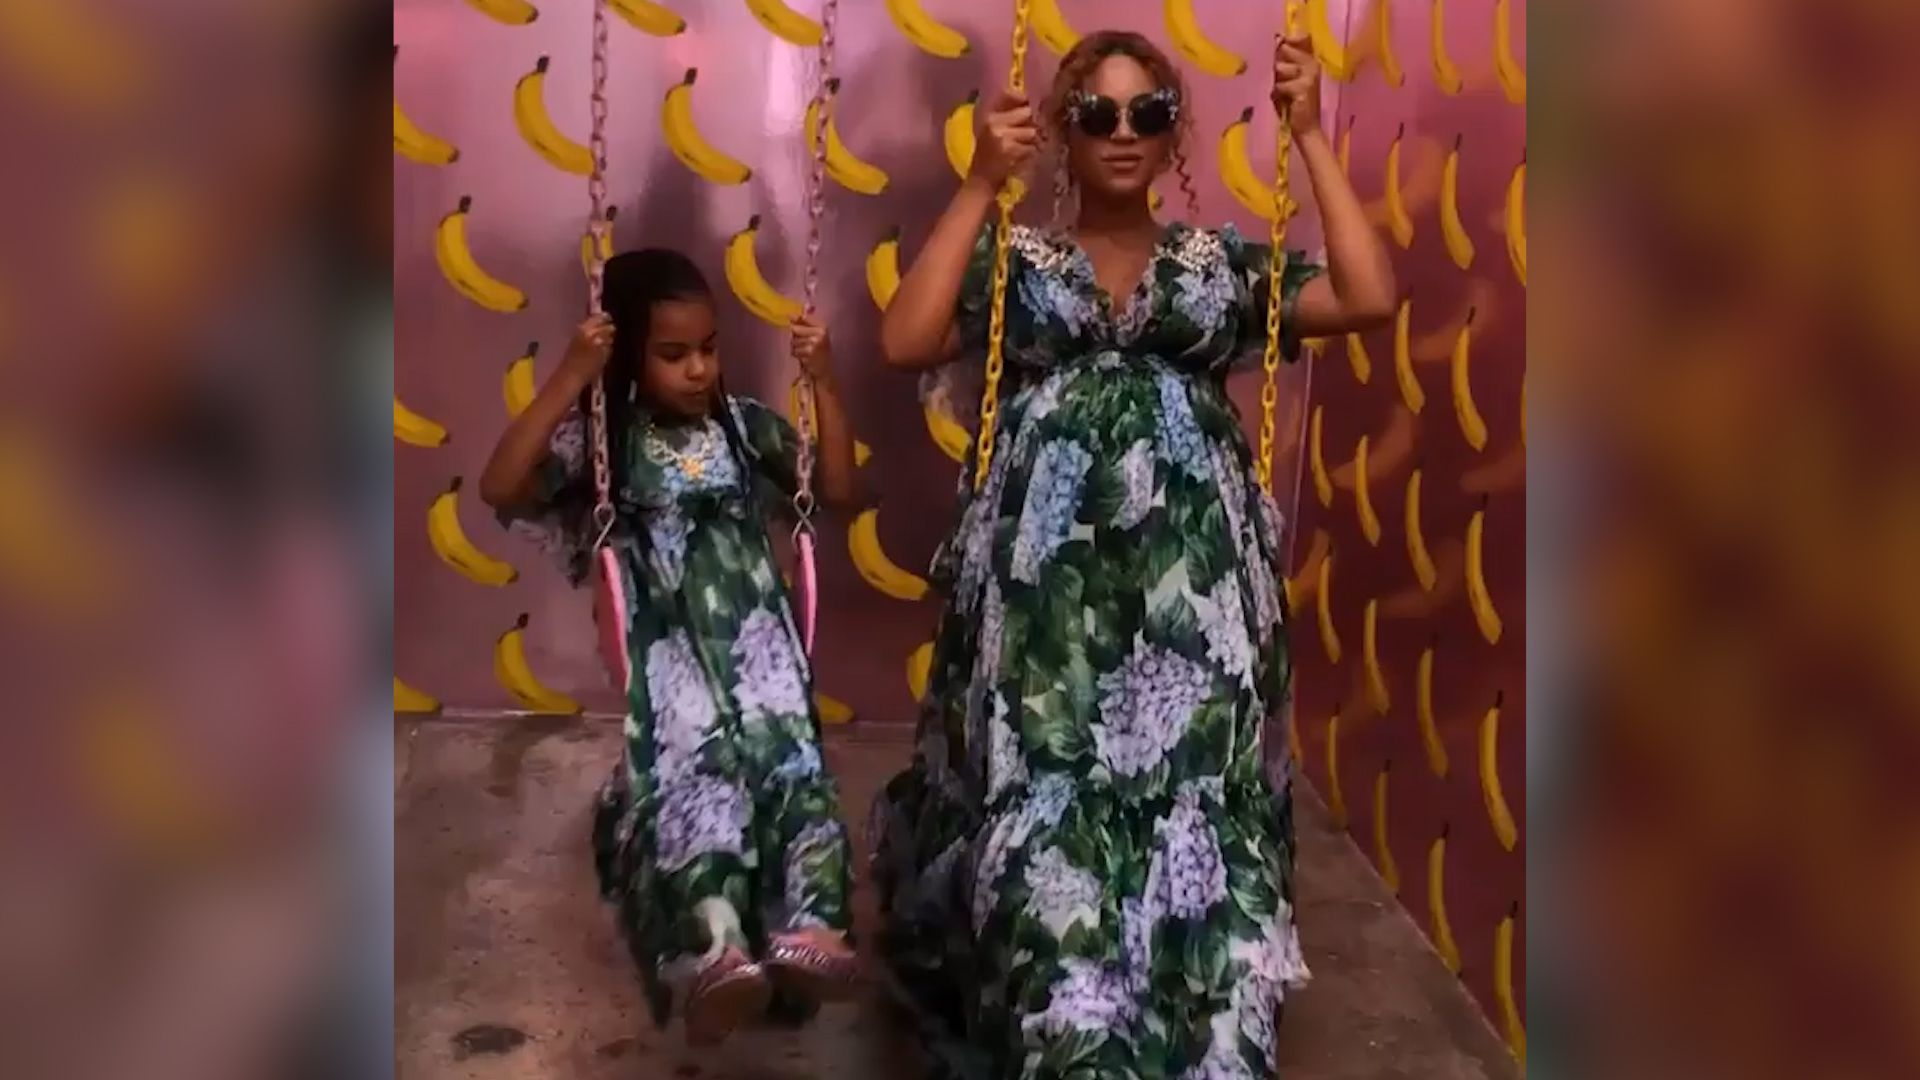 Beyoncé's Twins Rumi and Sir Look So Grown Up in Previously Unseen Snaps